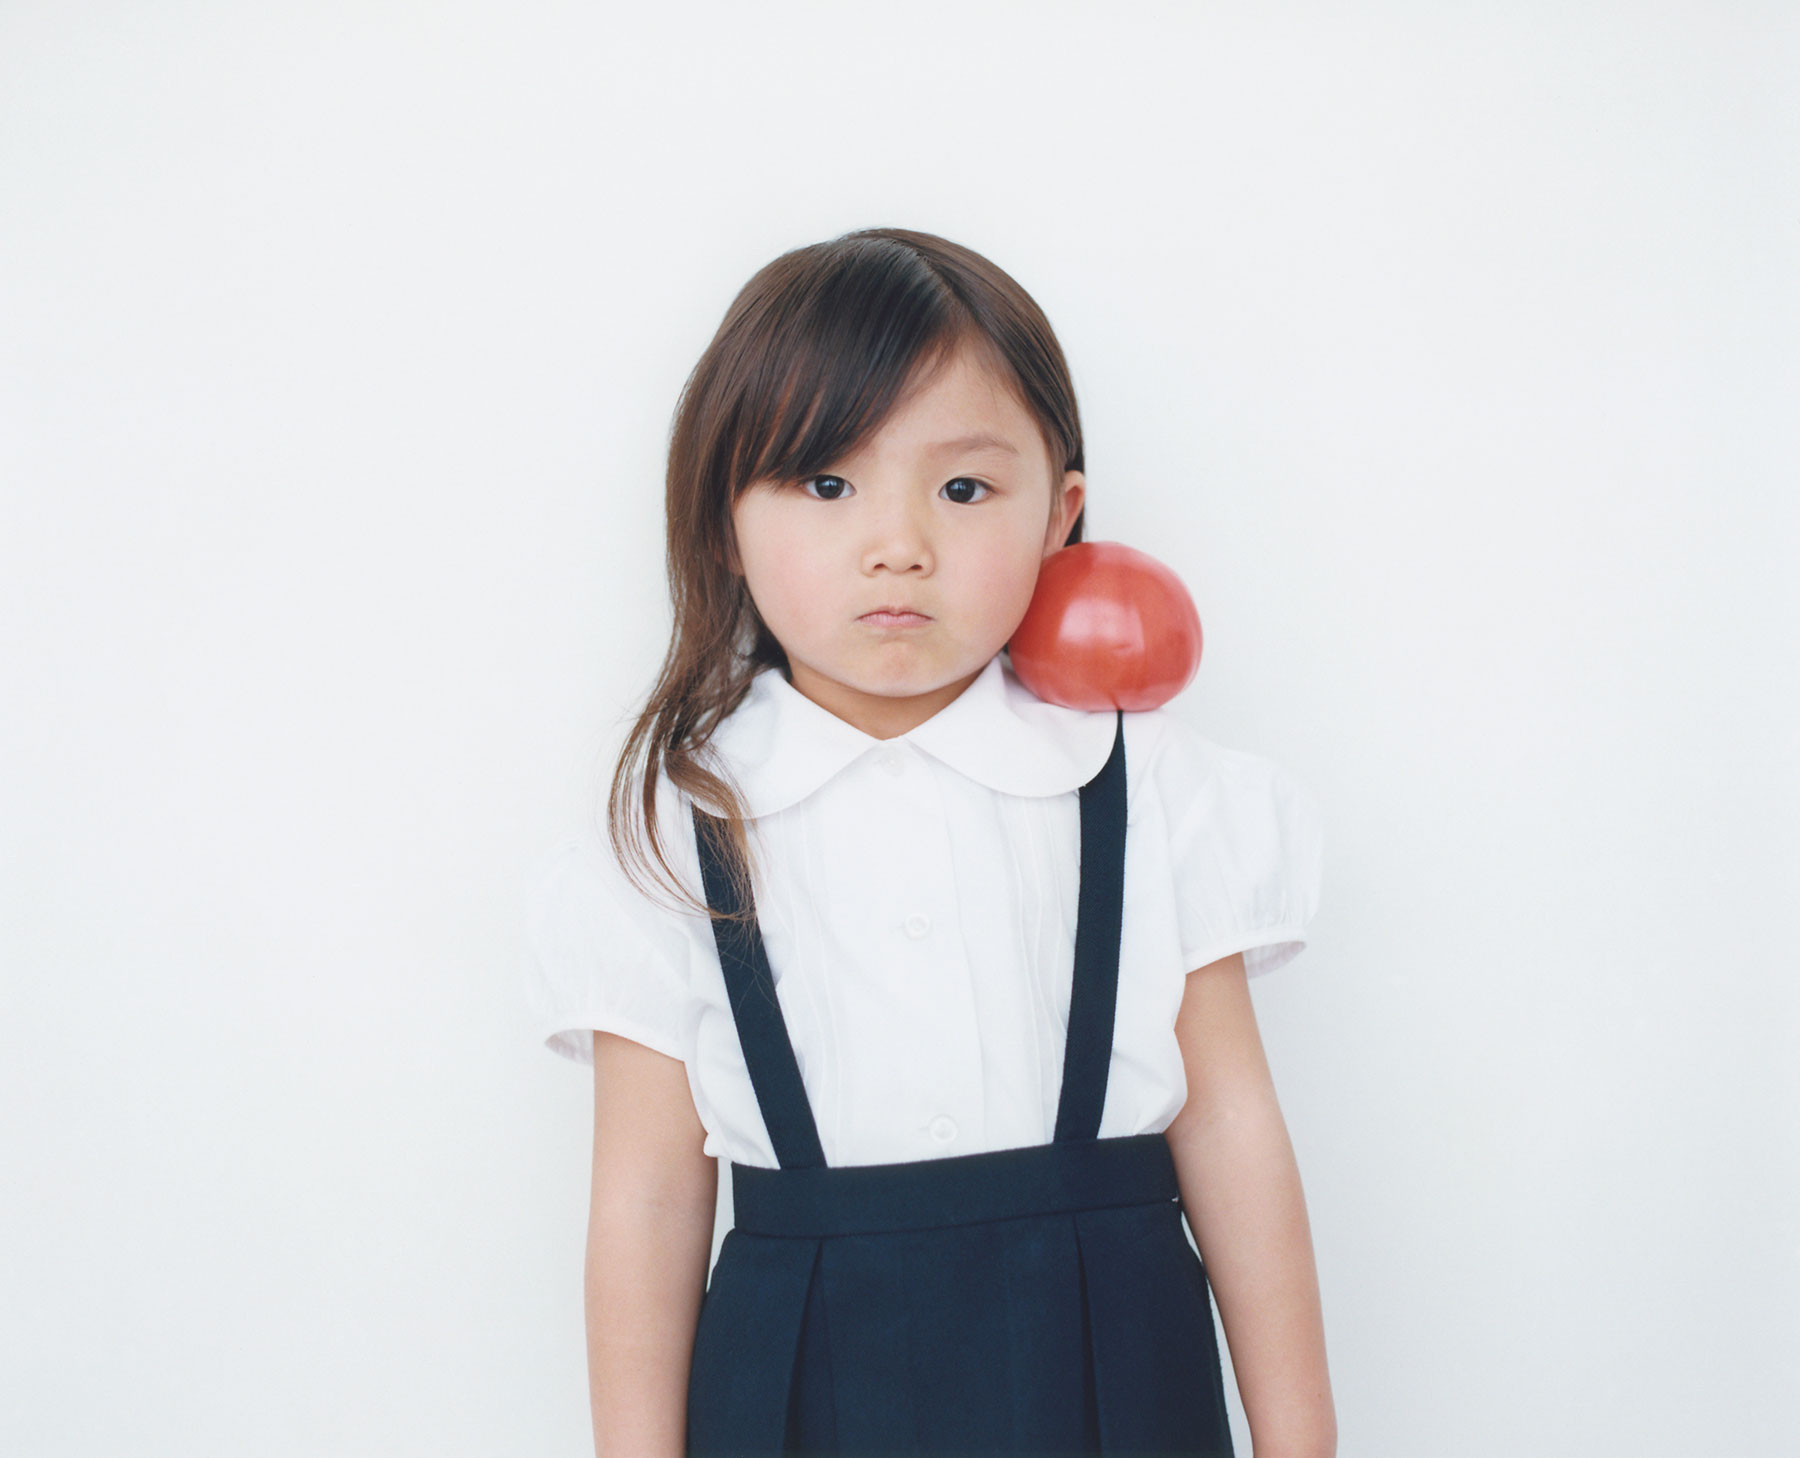 Osamu Yokonami,  1000 Children: Red Tomato No. 9 , 2010-2013  Digital pigment print, 895 x 1105 mm (approx. 35 x 43.5 in), edition of 5; 146 x 168 mm (approx. 5.75 x 6.6 in), edition of 10   Inquire